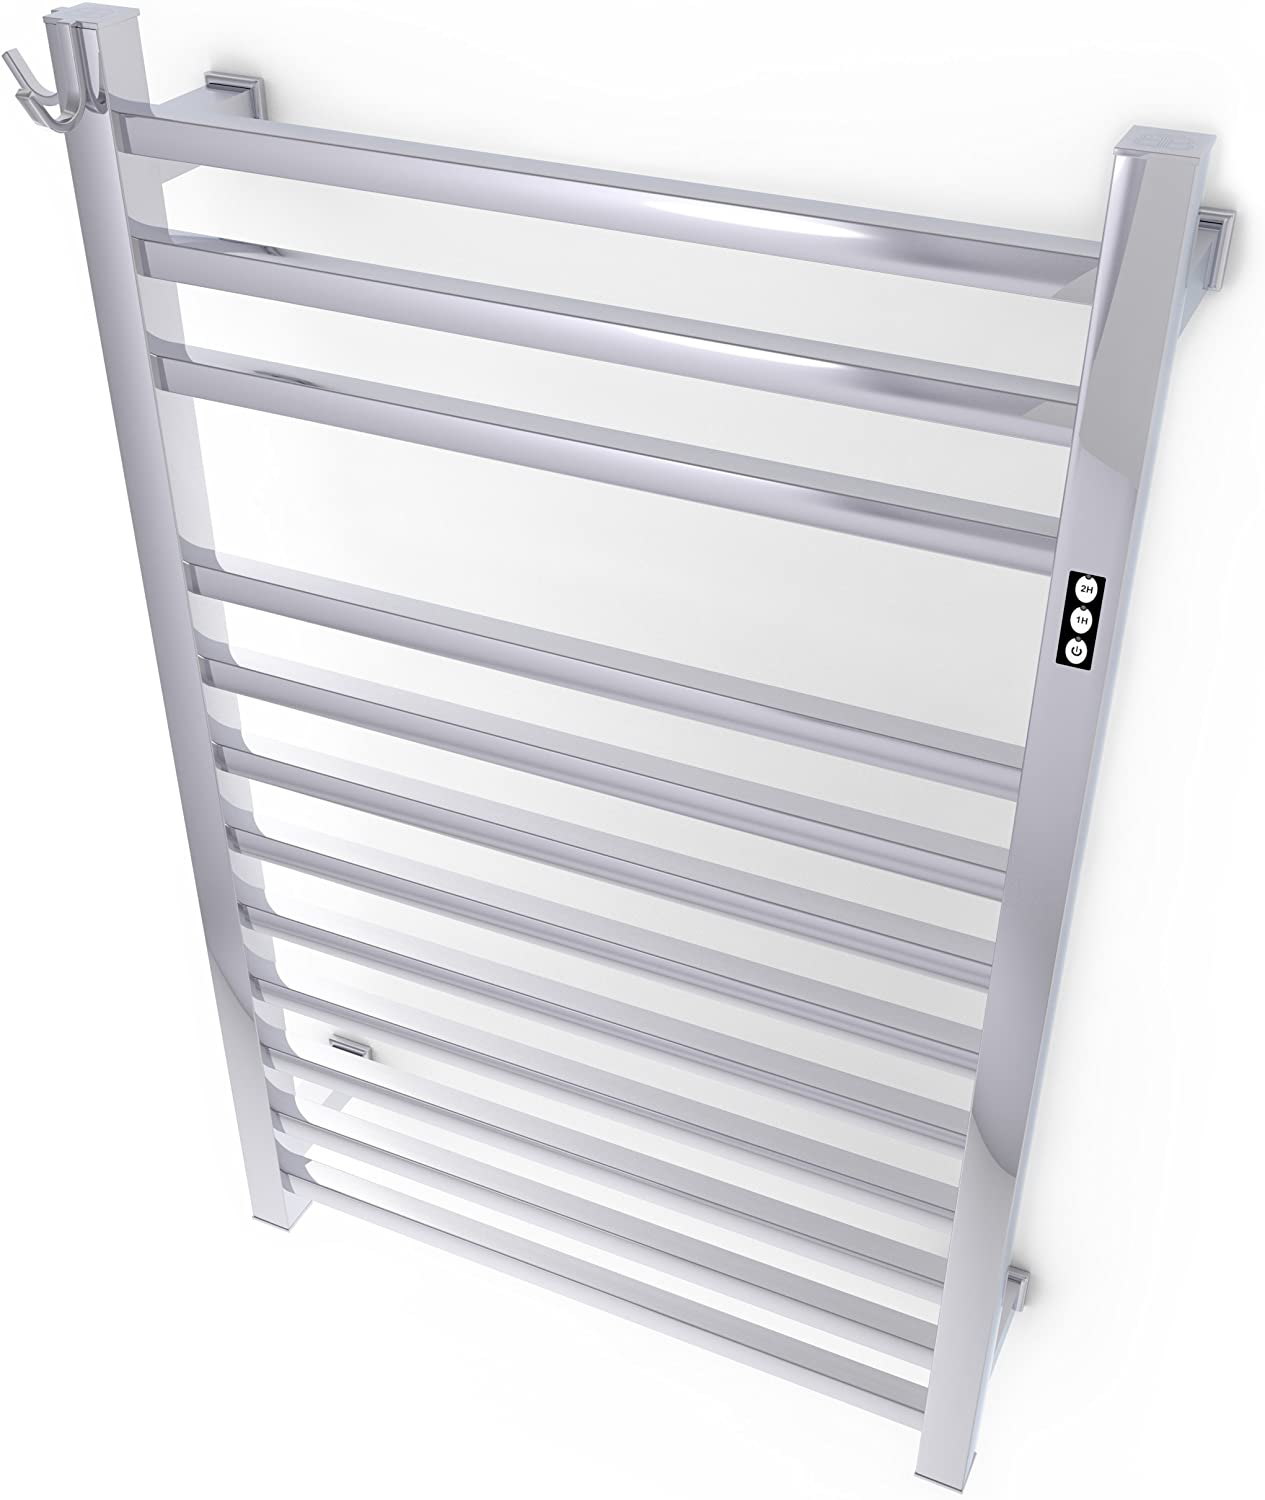 Brandon Basics silver wall mounted towel warmer with timers